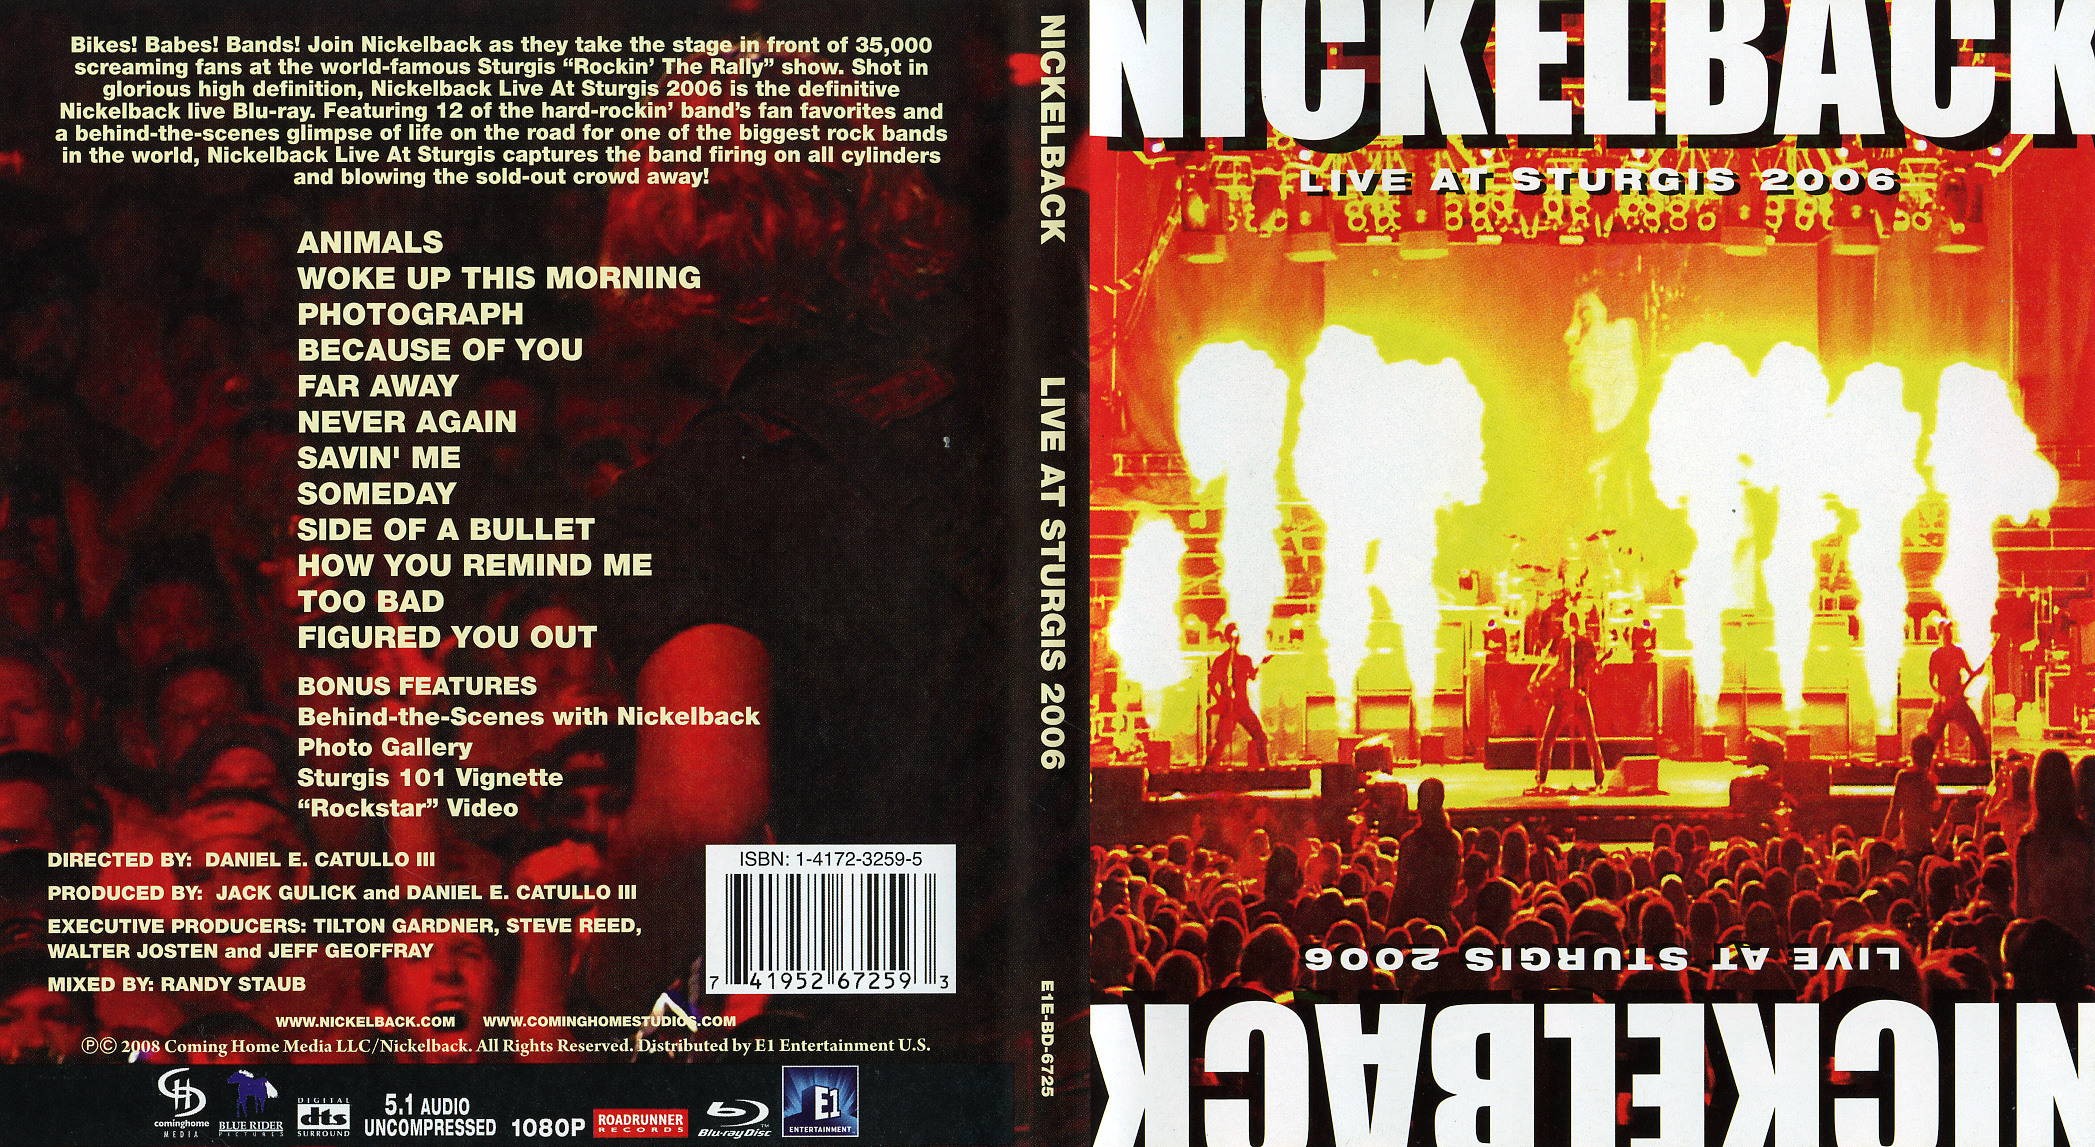 Nickelback Live At Sturgis 2006 Blu Ray Cd Sniper